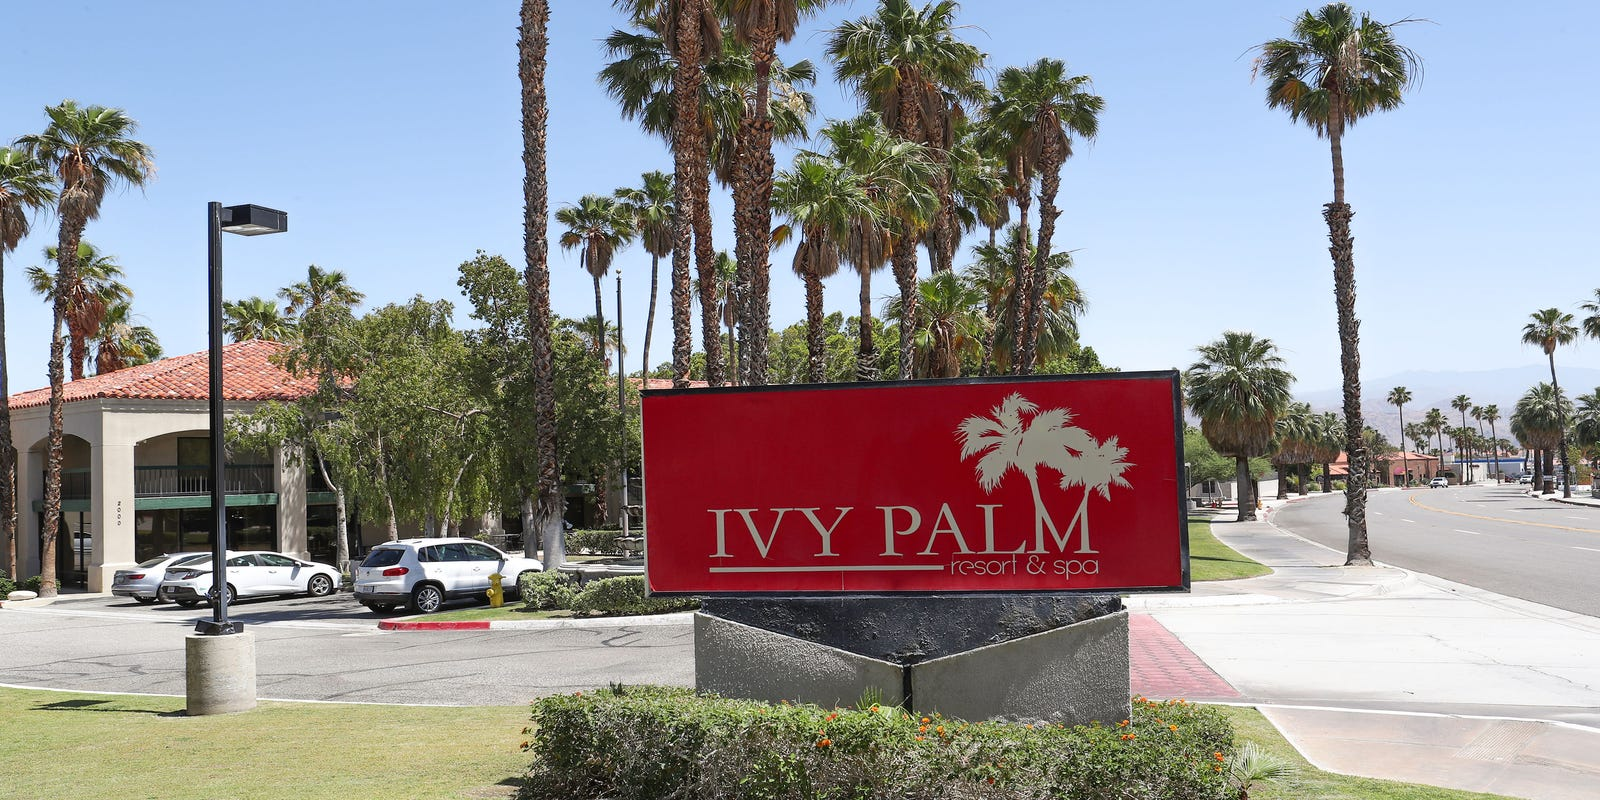 State awards $4.25M for Ivy Palm project, first affordable housing built in Palm Springs in a decade